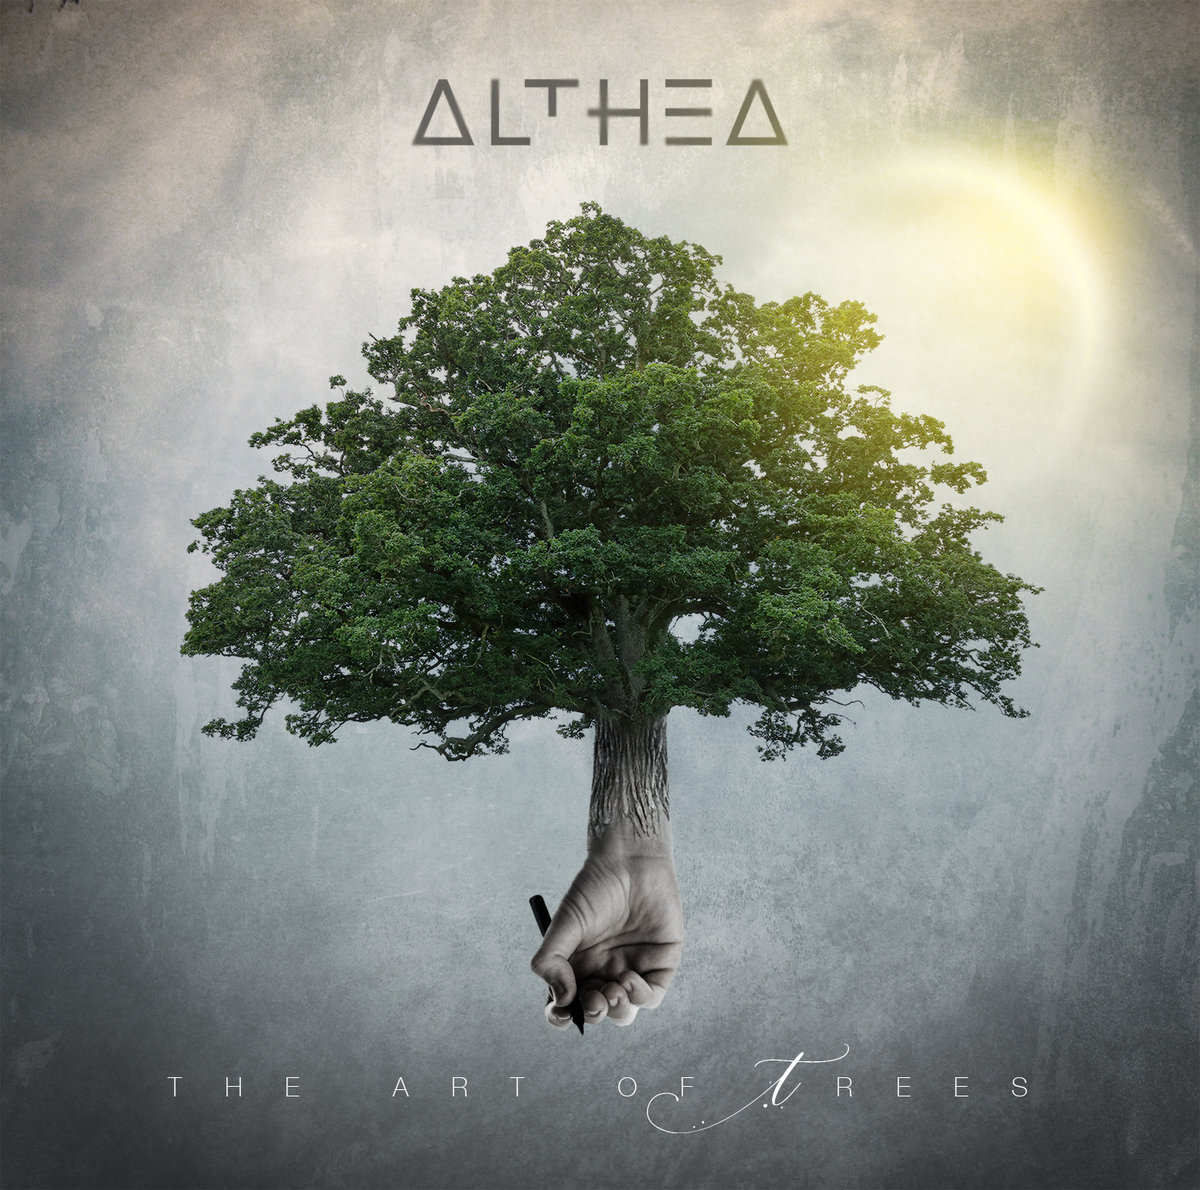 The Art of Trees | Althea